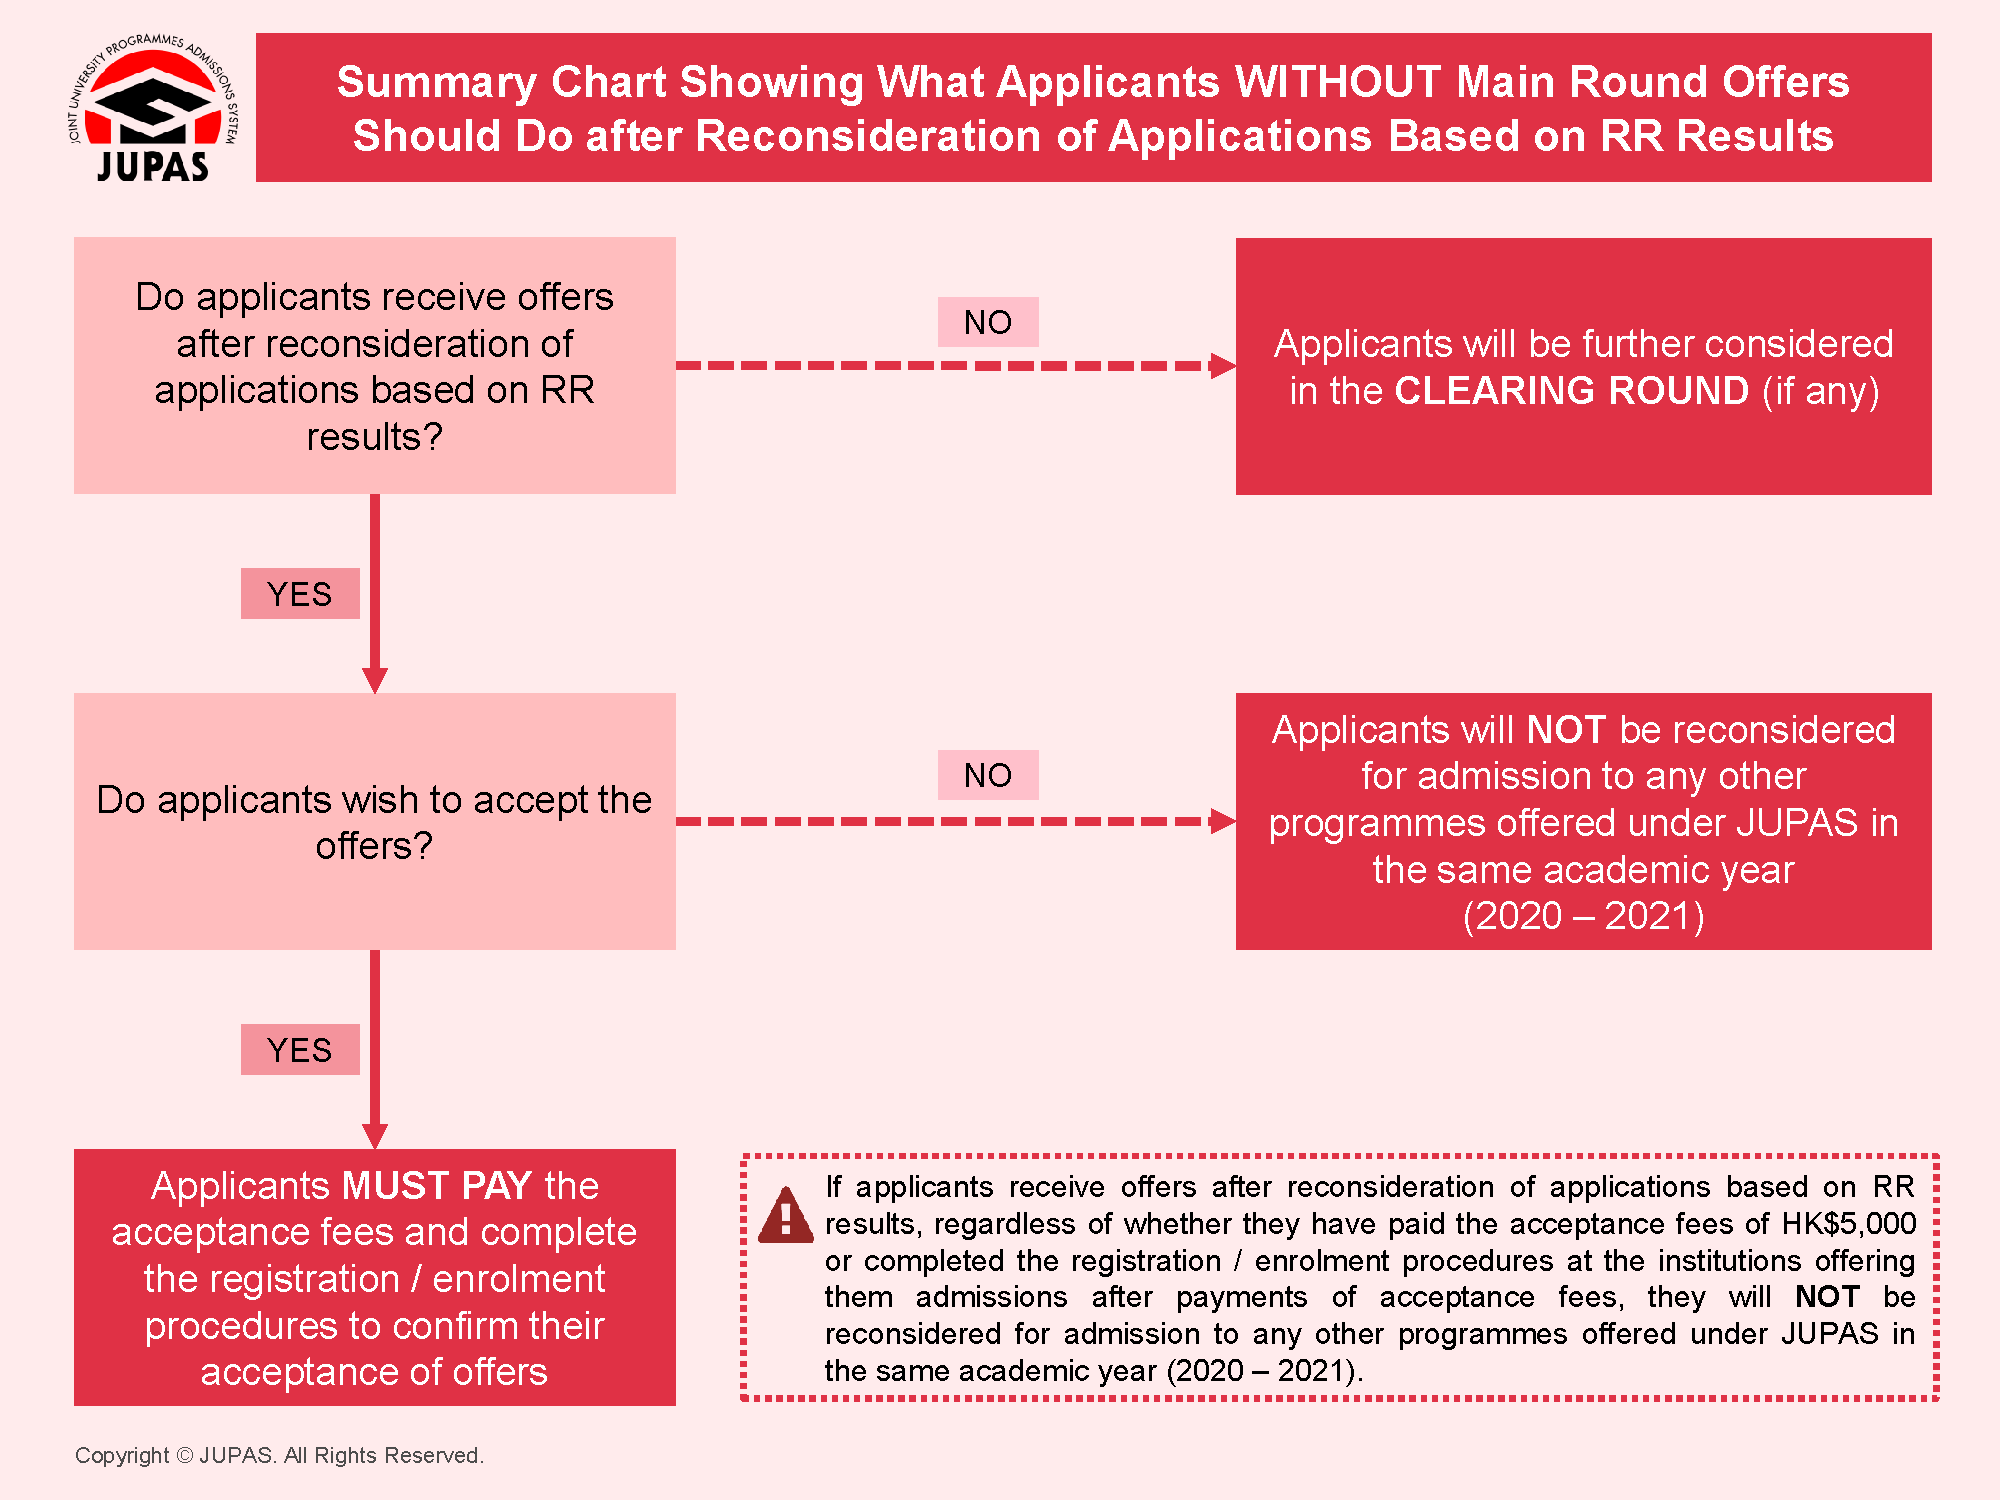 Summary Chart Showing What Applicants WITHOUT Main Round Offers Should Do after Reconsideration of Application Based on RR Results